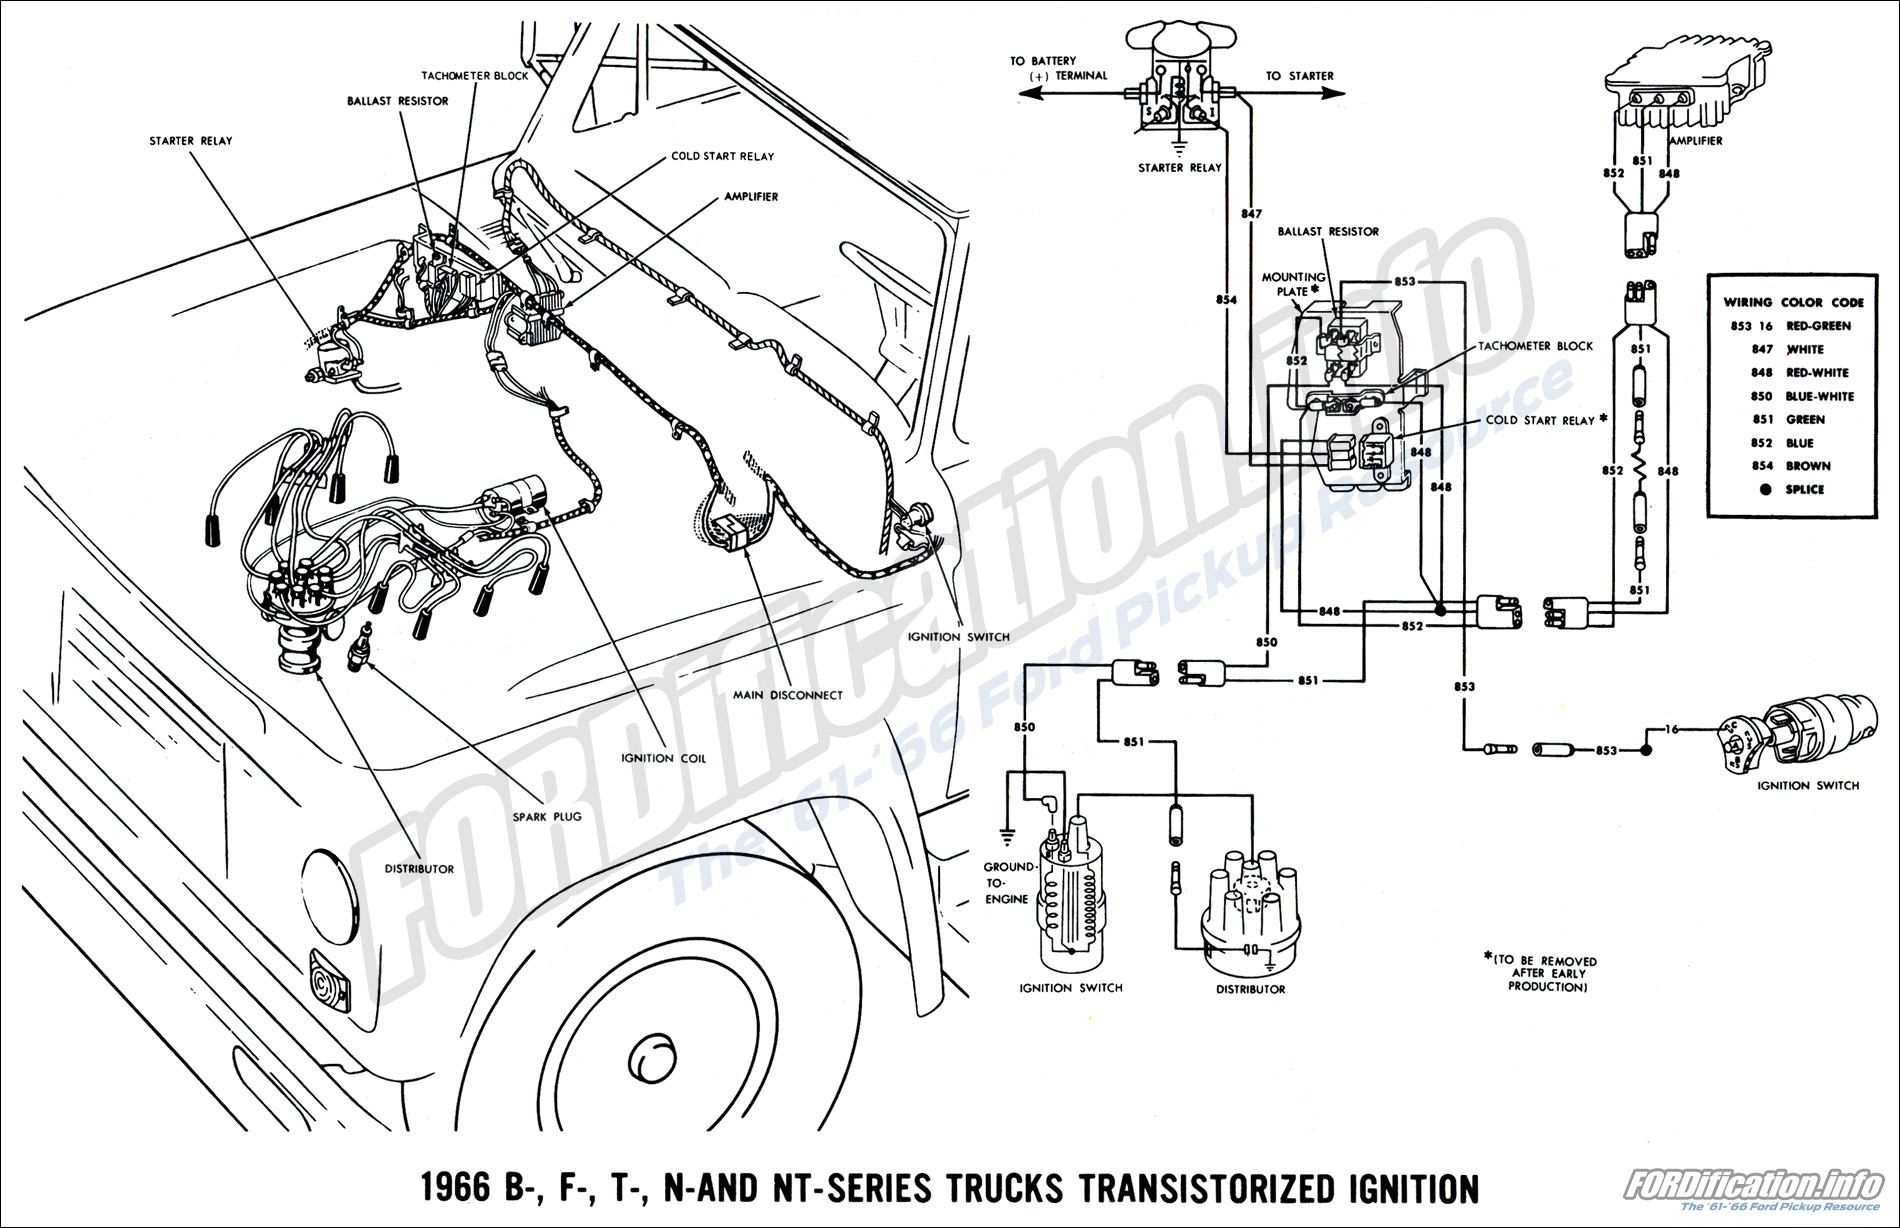 66 Ford Wiring Diagram Real Ud Trucks 1966 Truck Diagrams Fordification Info The 61 Rh Ranchero Mustang